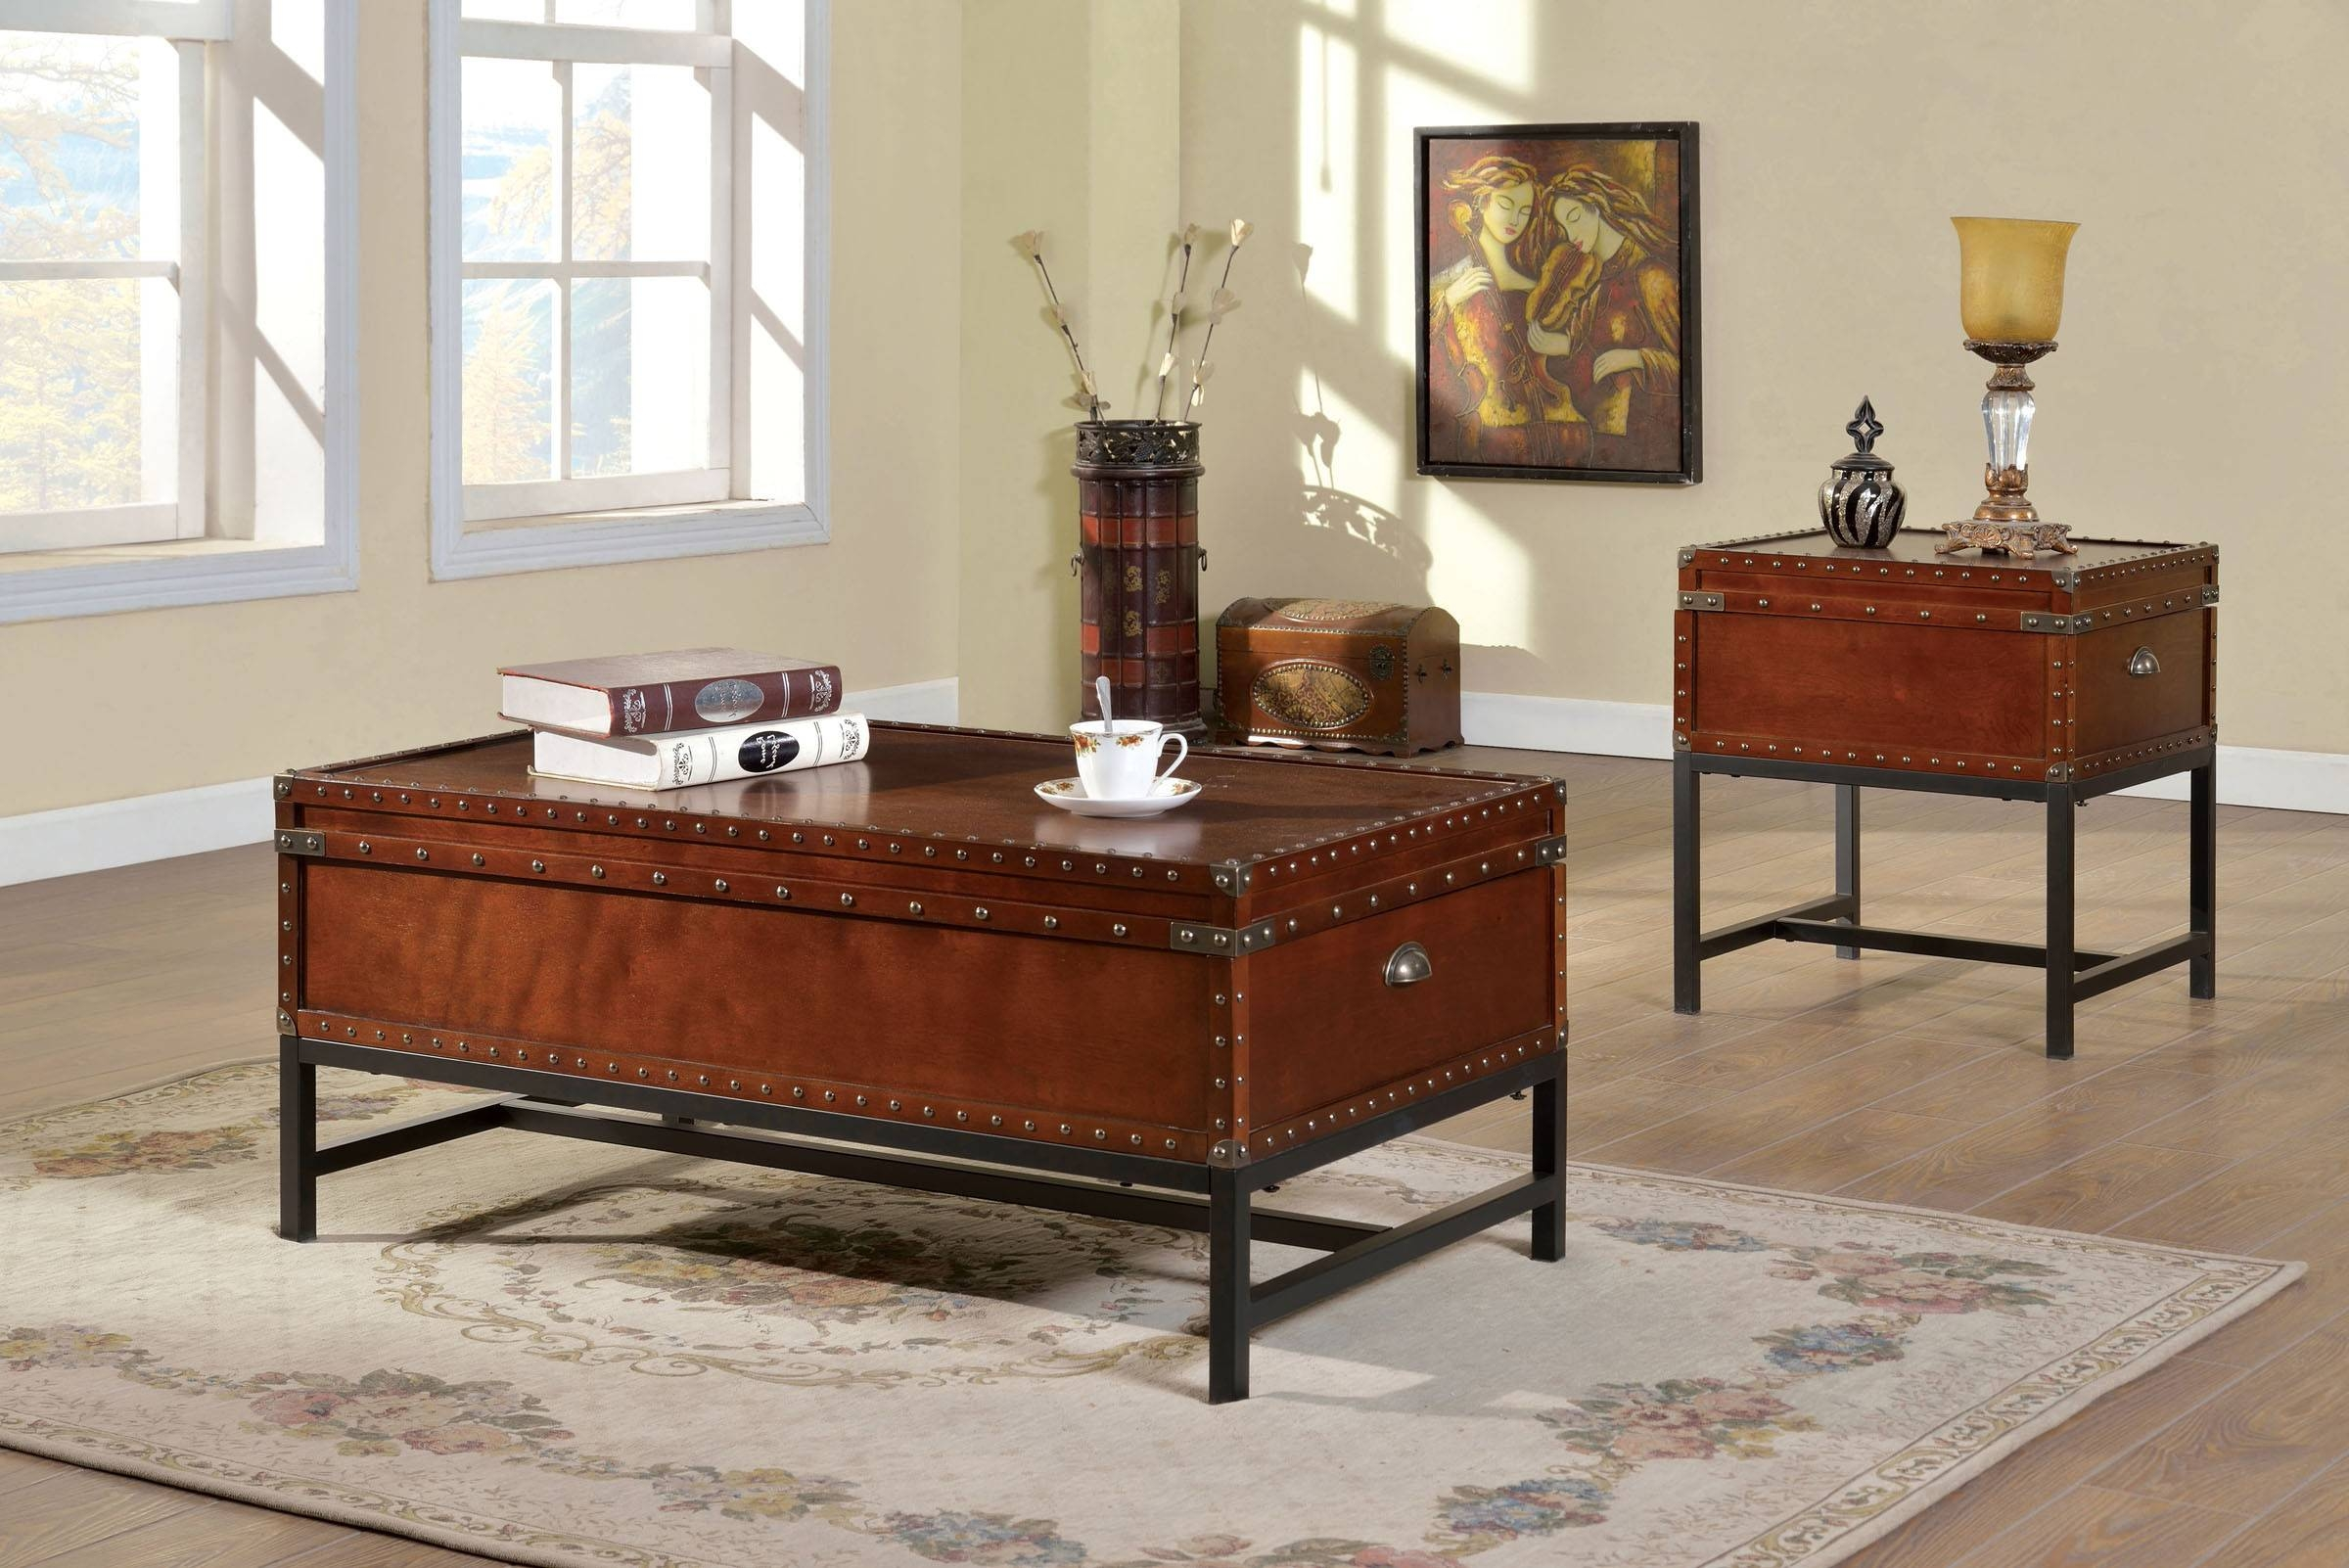 Furniture Of America Cm4110C Cm4110E Milbank 2 Pieces Industrial in Cherry Wood Coffee Table Sets (Image 19 of 30)